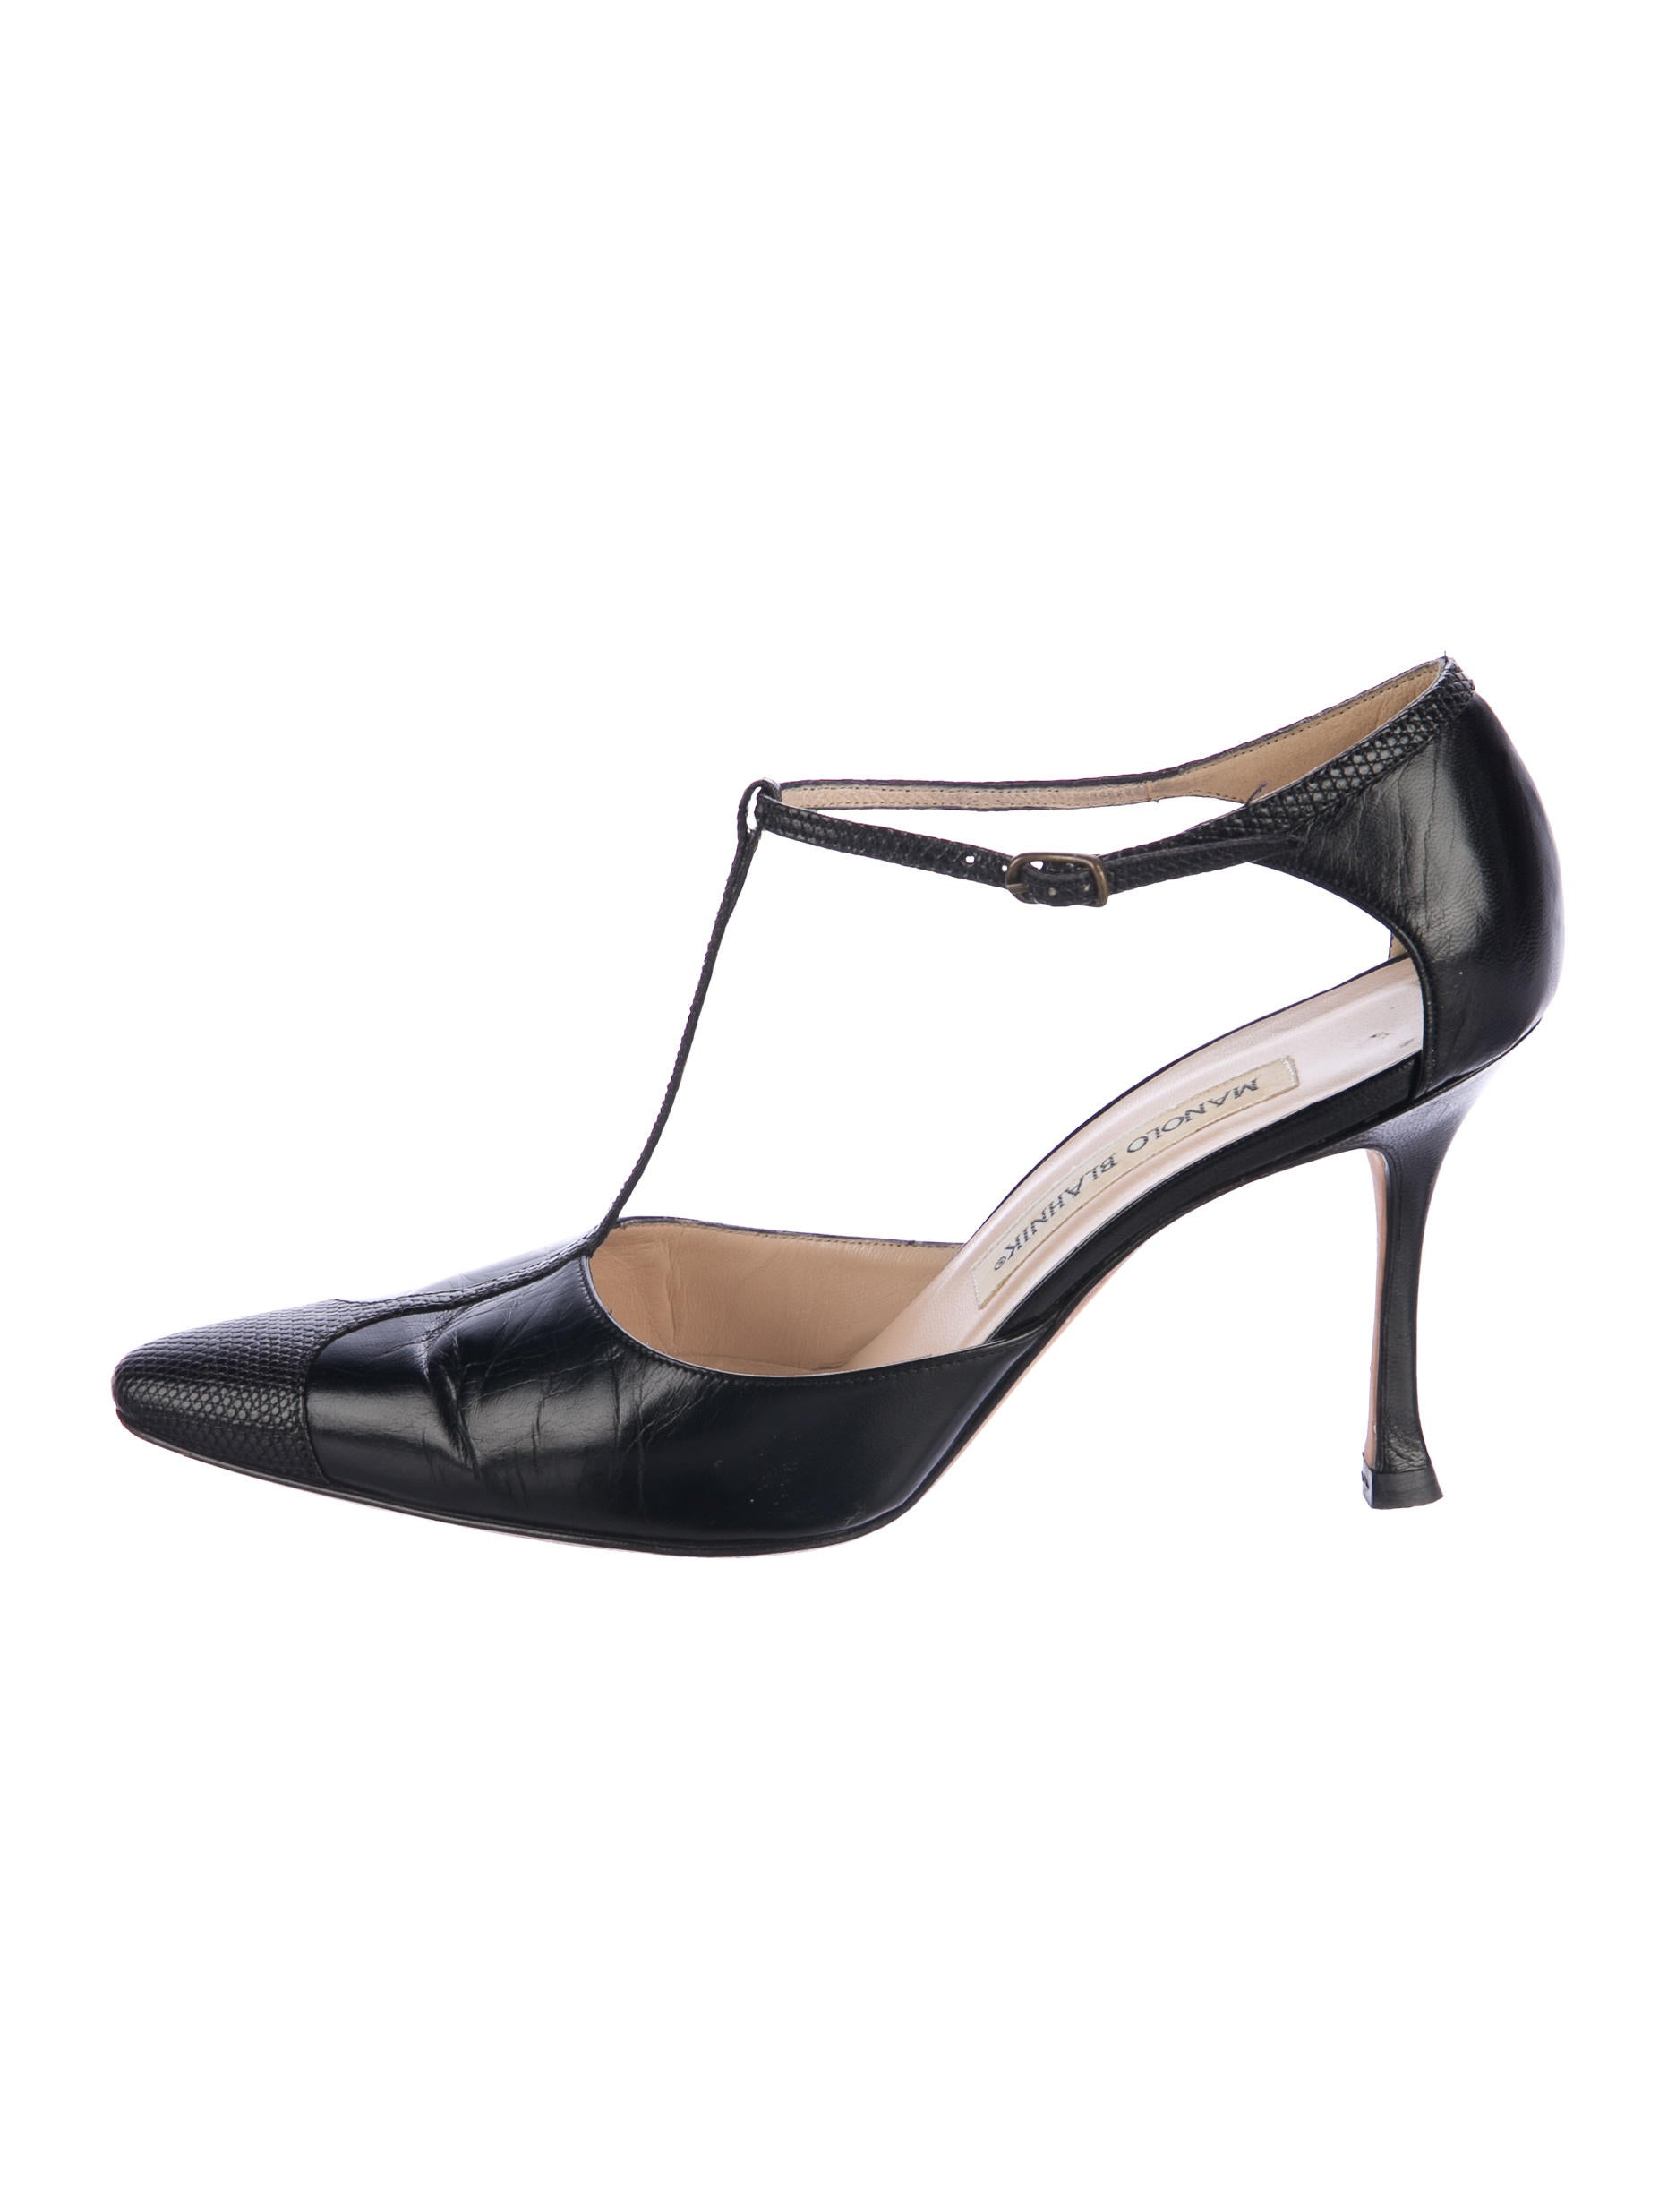 Manolo Blahnik Lizard-Trimmed T-Strap Pumps outlet cheap price EHG09n2tF